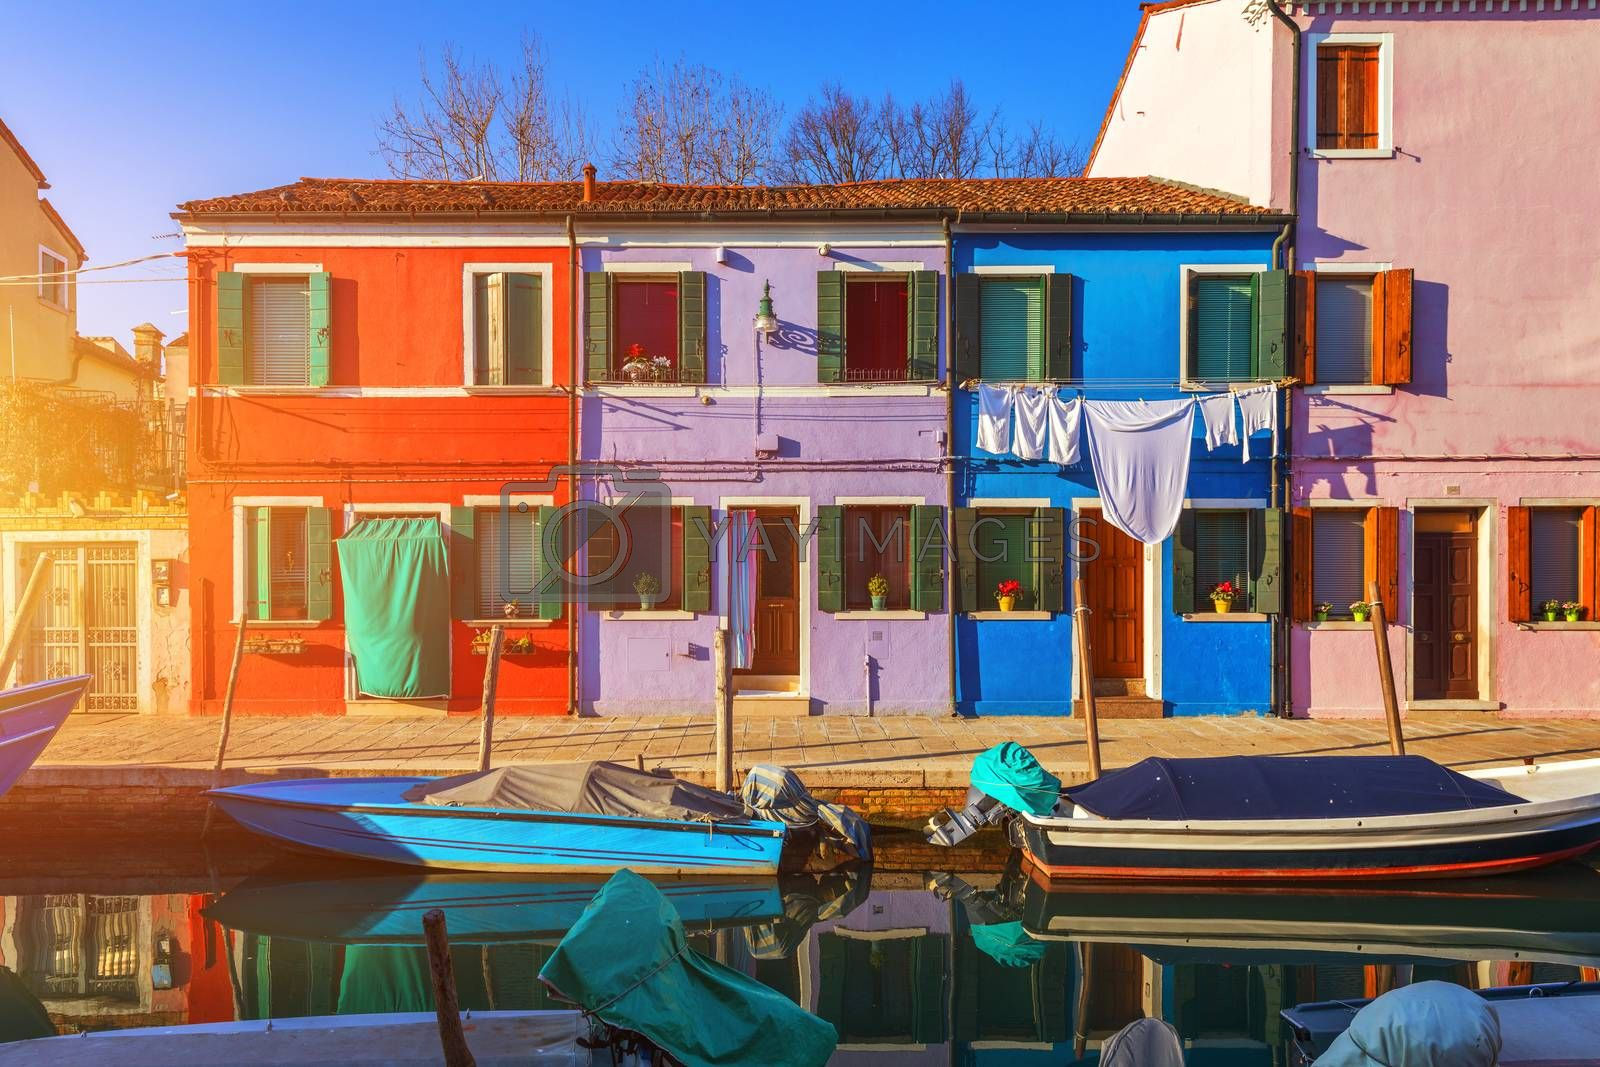 Lovely house facade and colorful walls in Burano, Venice. Burano island canal, colorful houses and boats, Venice landmark, Italy. Europe